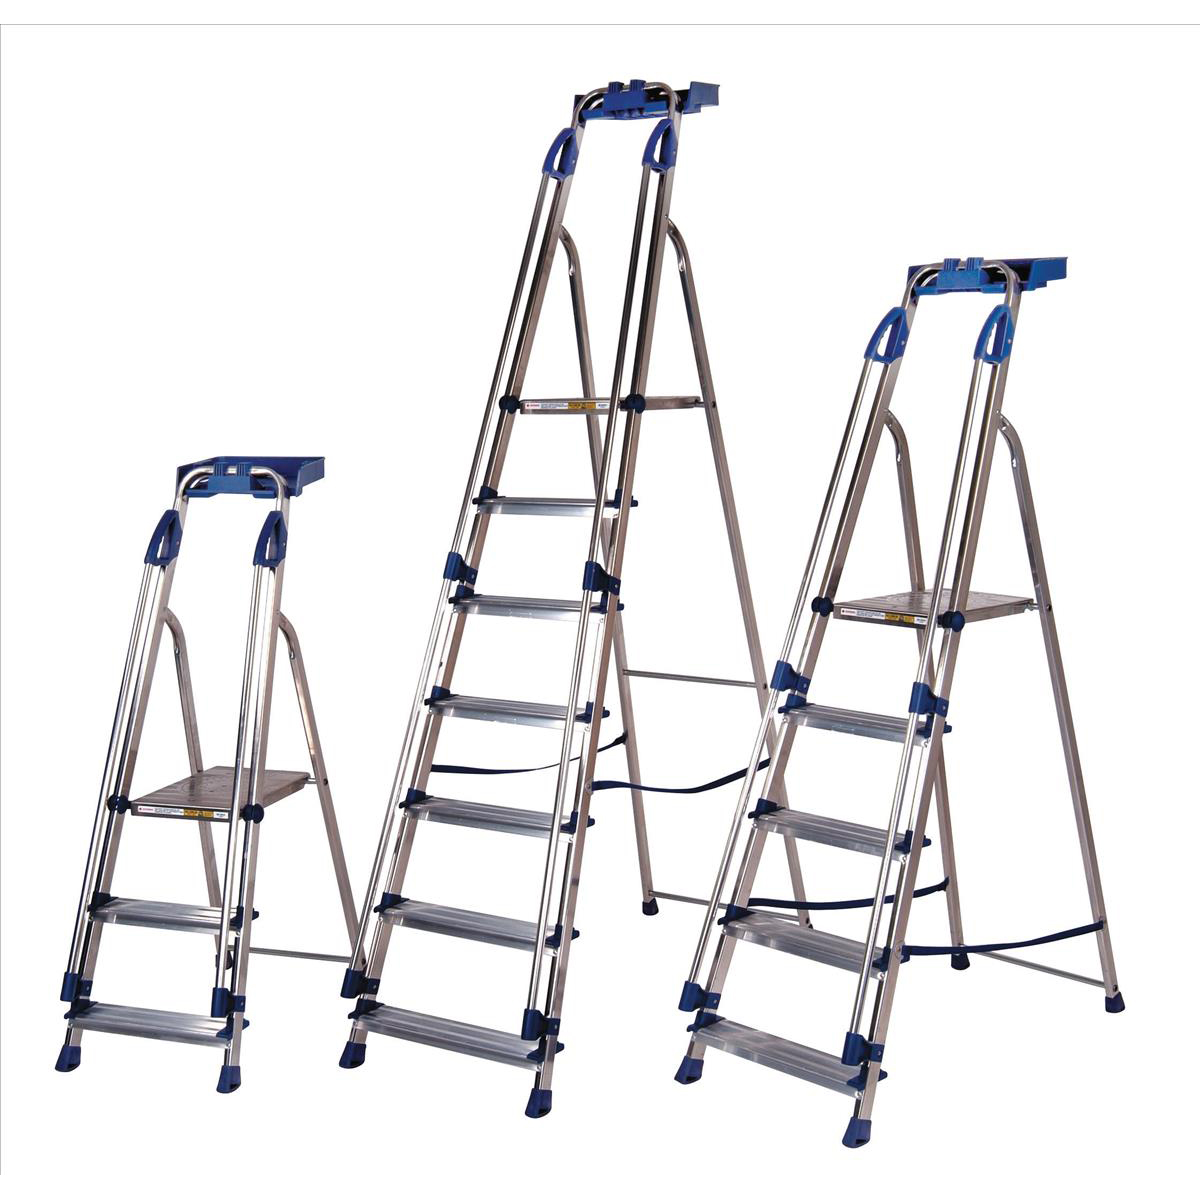 Steps Tradesman Platform Step Ladder 6 Steps Capacity 150kg Silver/Blue